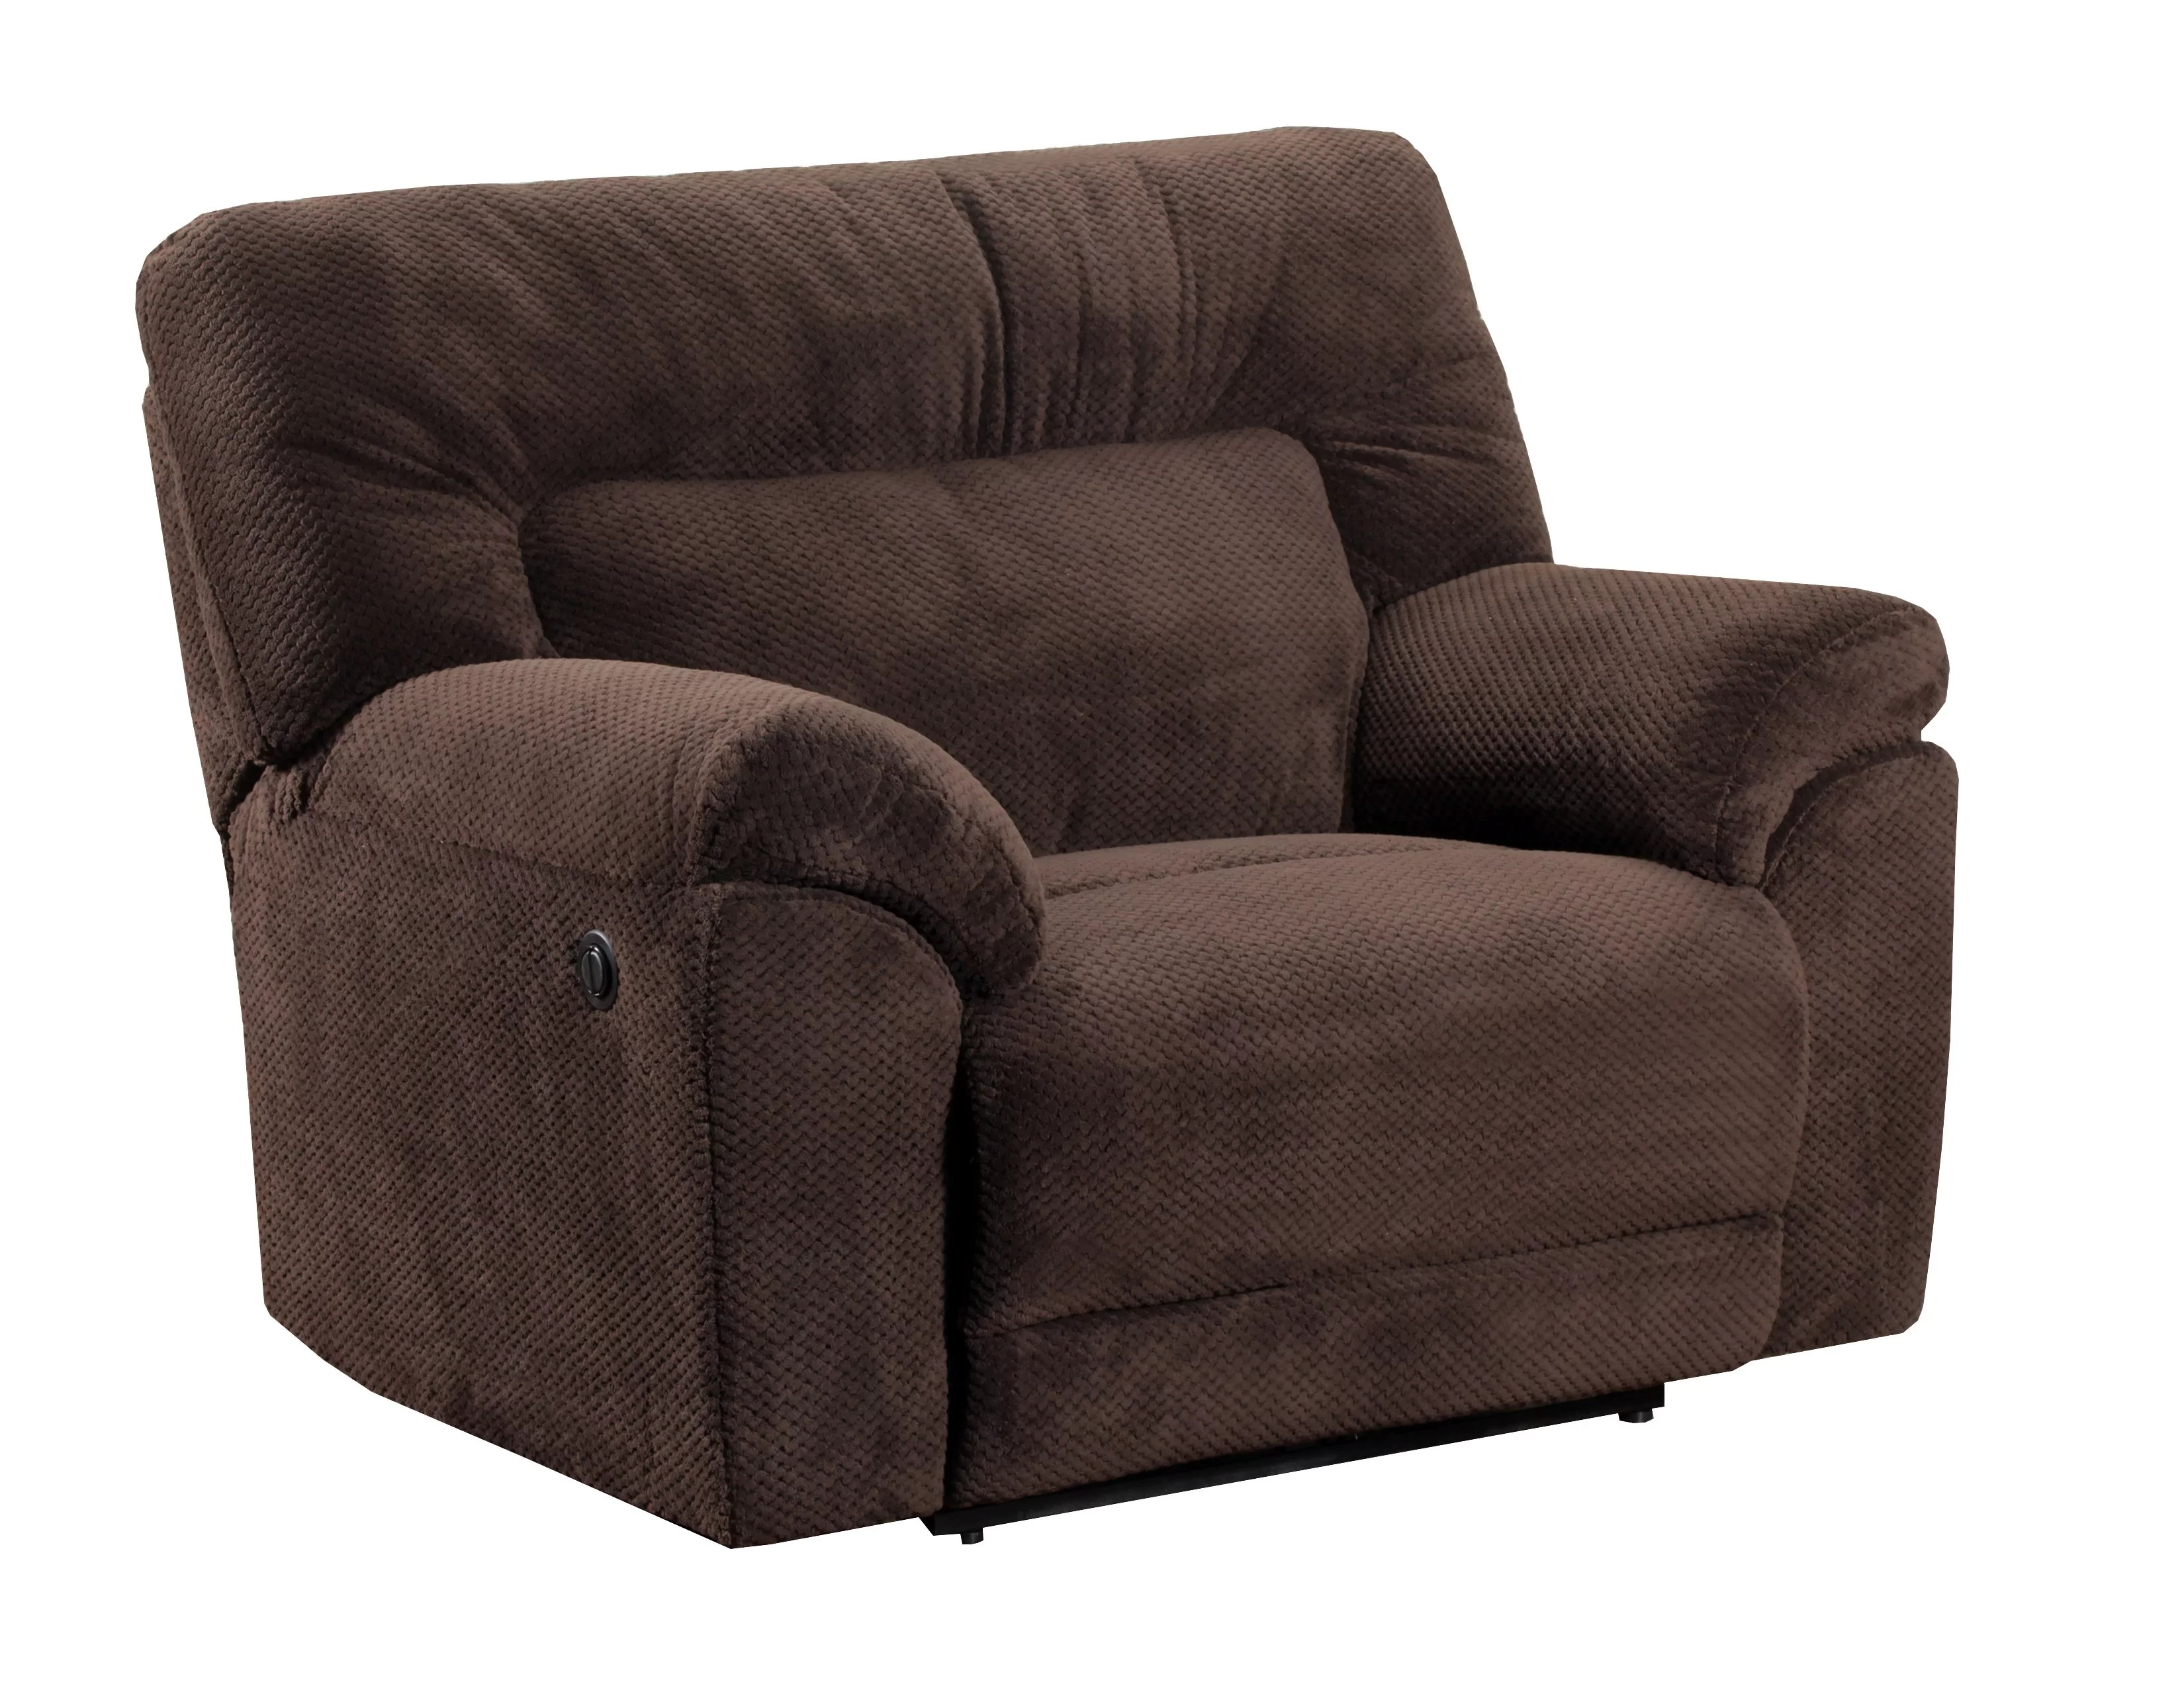 Double Wide Recliner Chair Oversized Recliners You Ll Love Wayfair